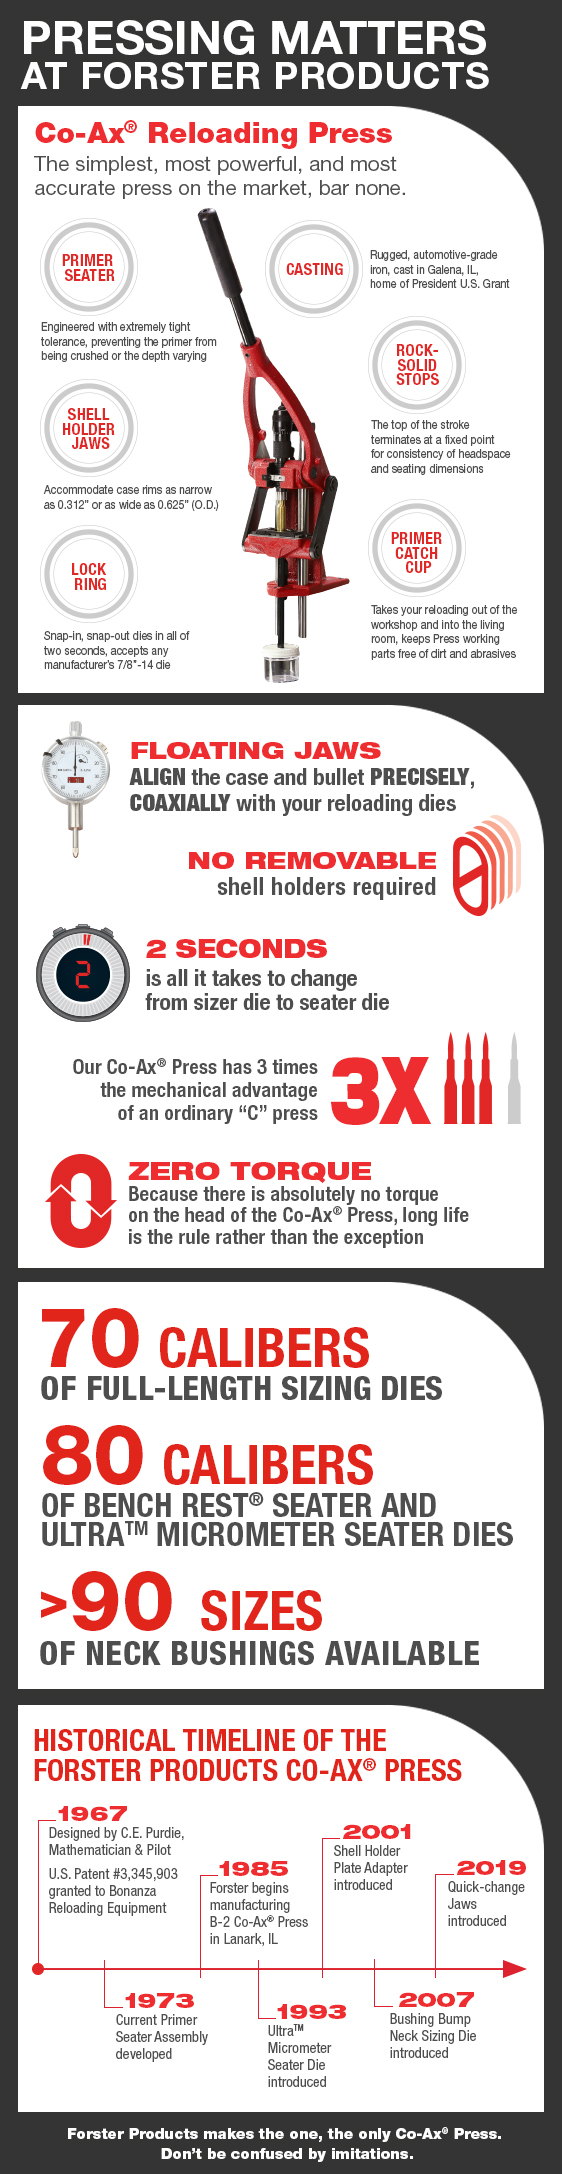 Co-Ax Press Infographic